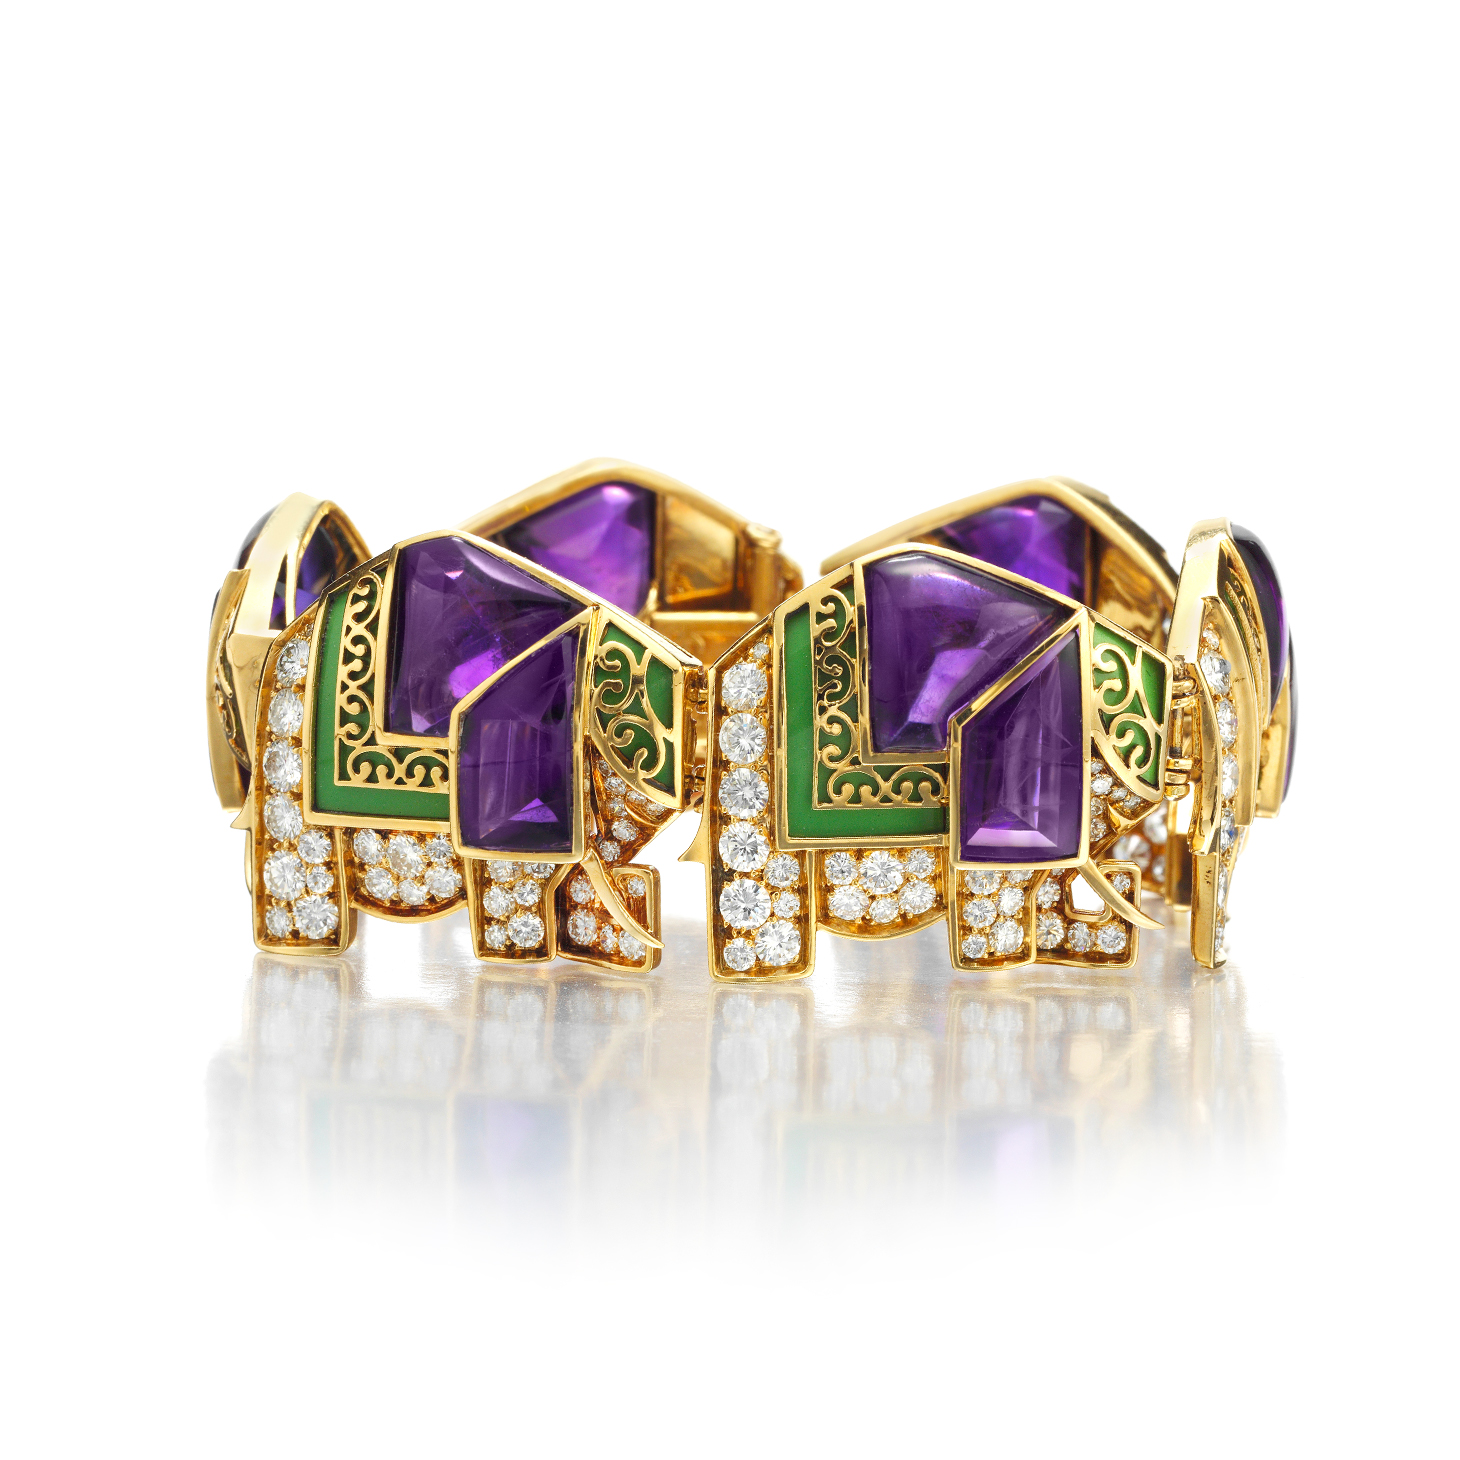 An Amethyst, Enamel and Diamond 'Elephant' Bracelet, by Bulgari, circa 1970